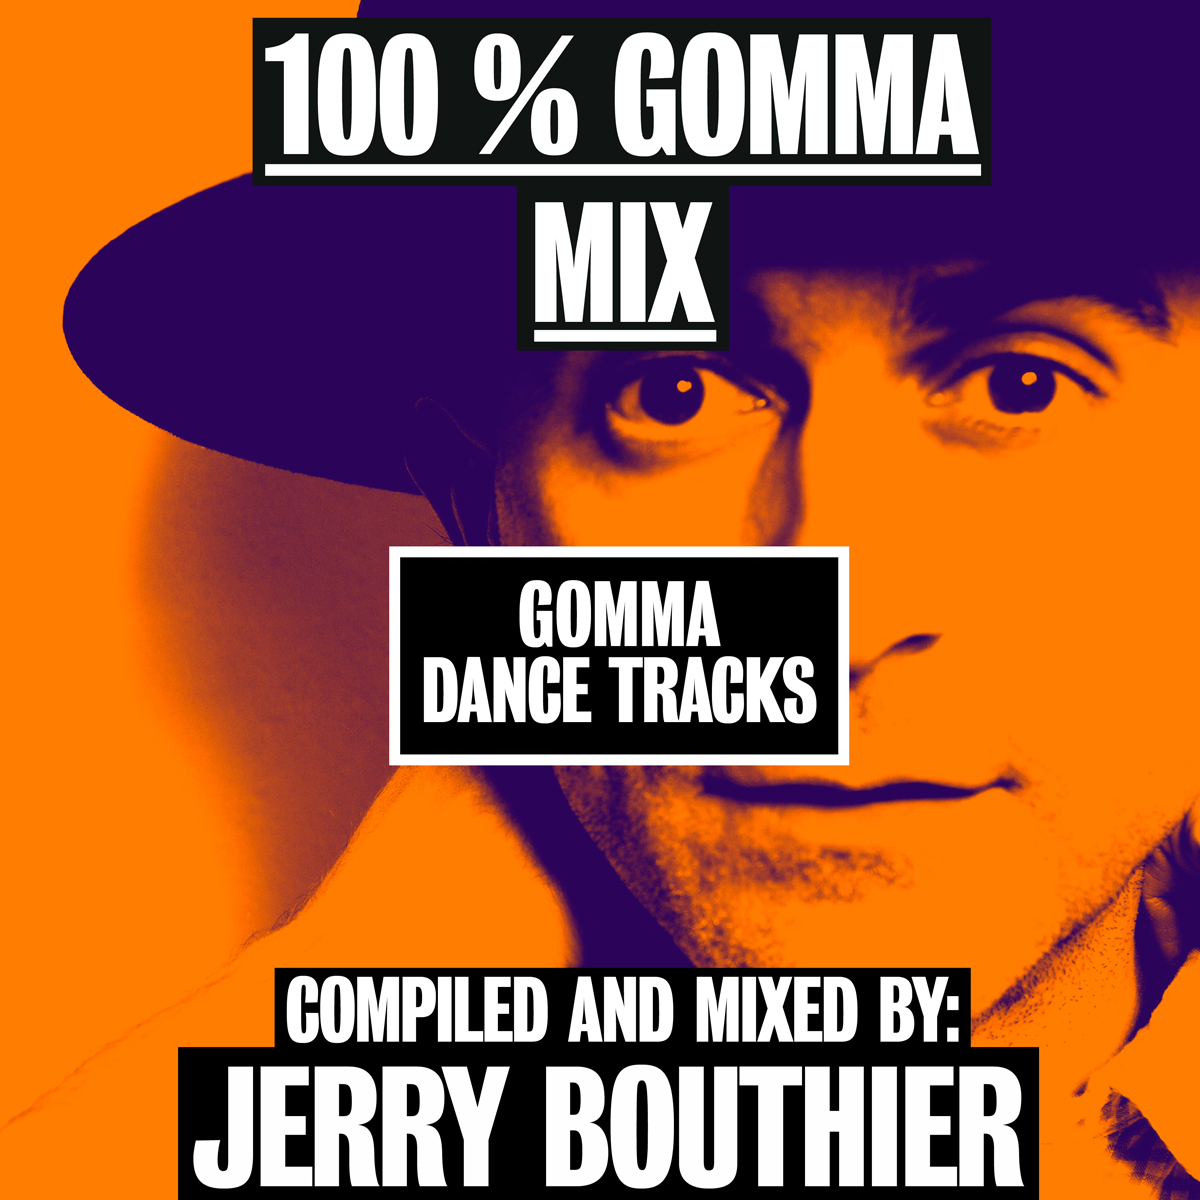 100% GOMMA MIX DANCE TRACKS COMPILED AND MIXED BY JERRY BOUTHIER MIX MIXTAPE LONG MIX 1 HOUR ARTWORK ORANGE PURPLE WEBSITE